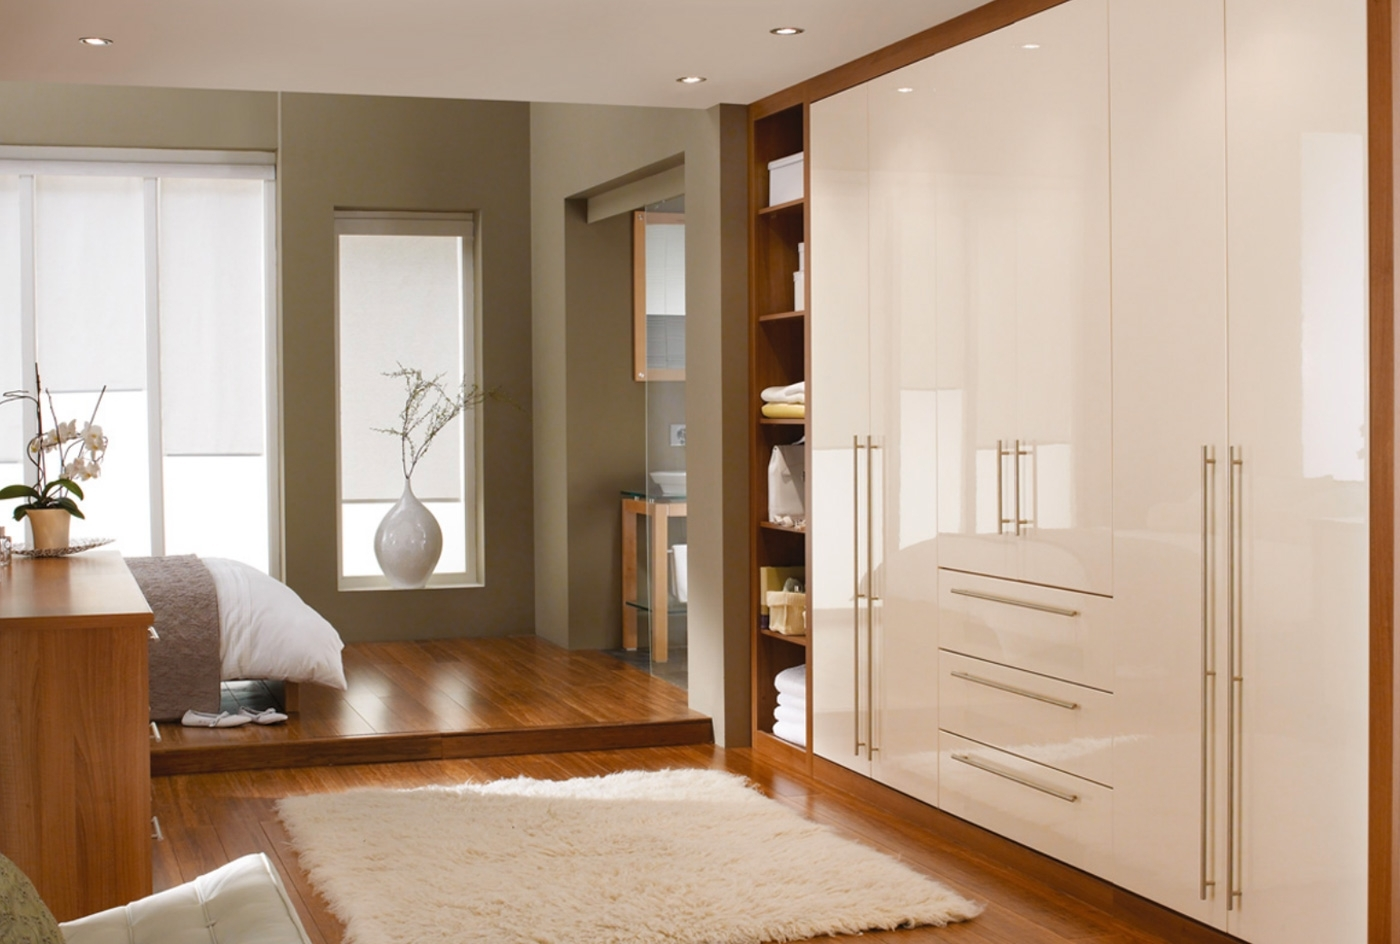 High Gloss Cosmopolitan Bedroom Furniture Range In Classic Cream Throughout Best And Newest Cream Gloss Wardrobes (View 2 of 15)